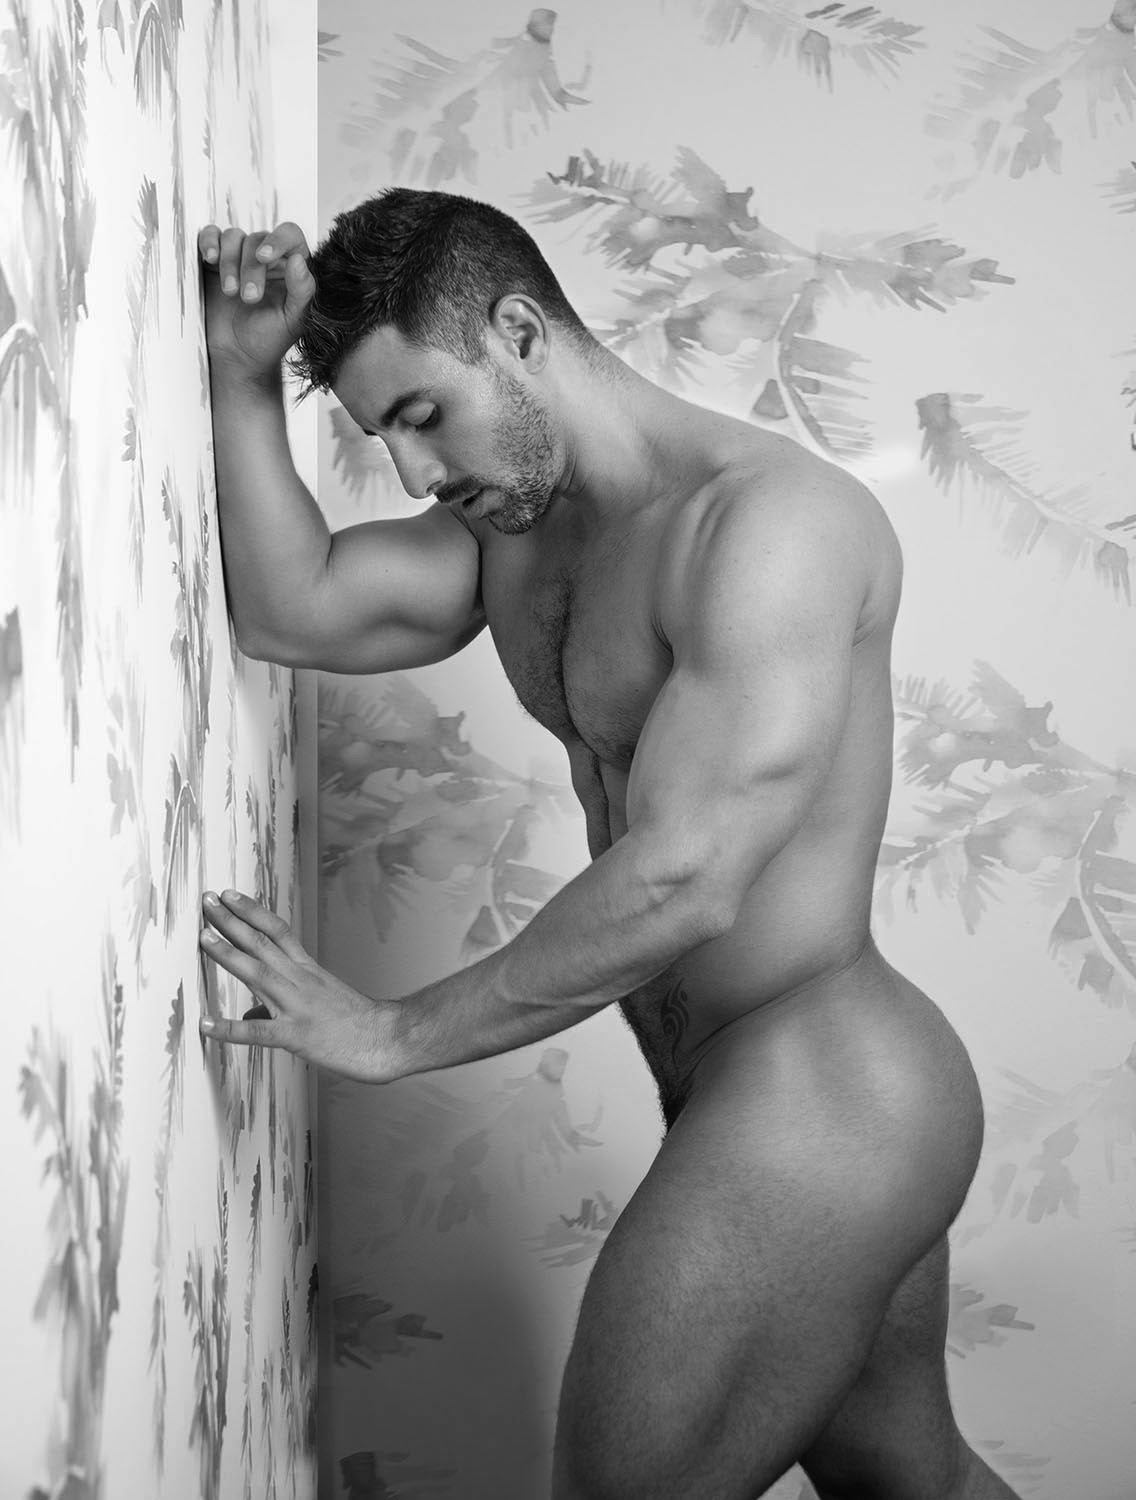 CarloS, by INCH PHOTOGRAPHY ft Carlos Fiore (NSFW).